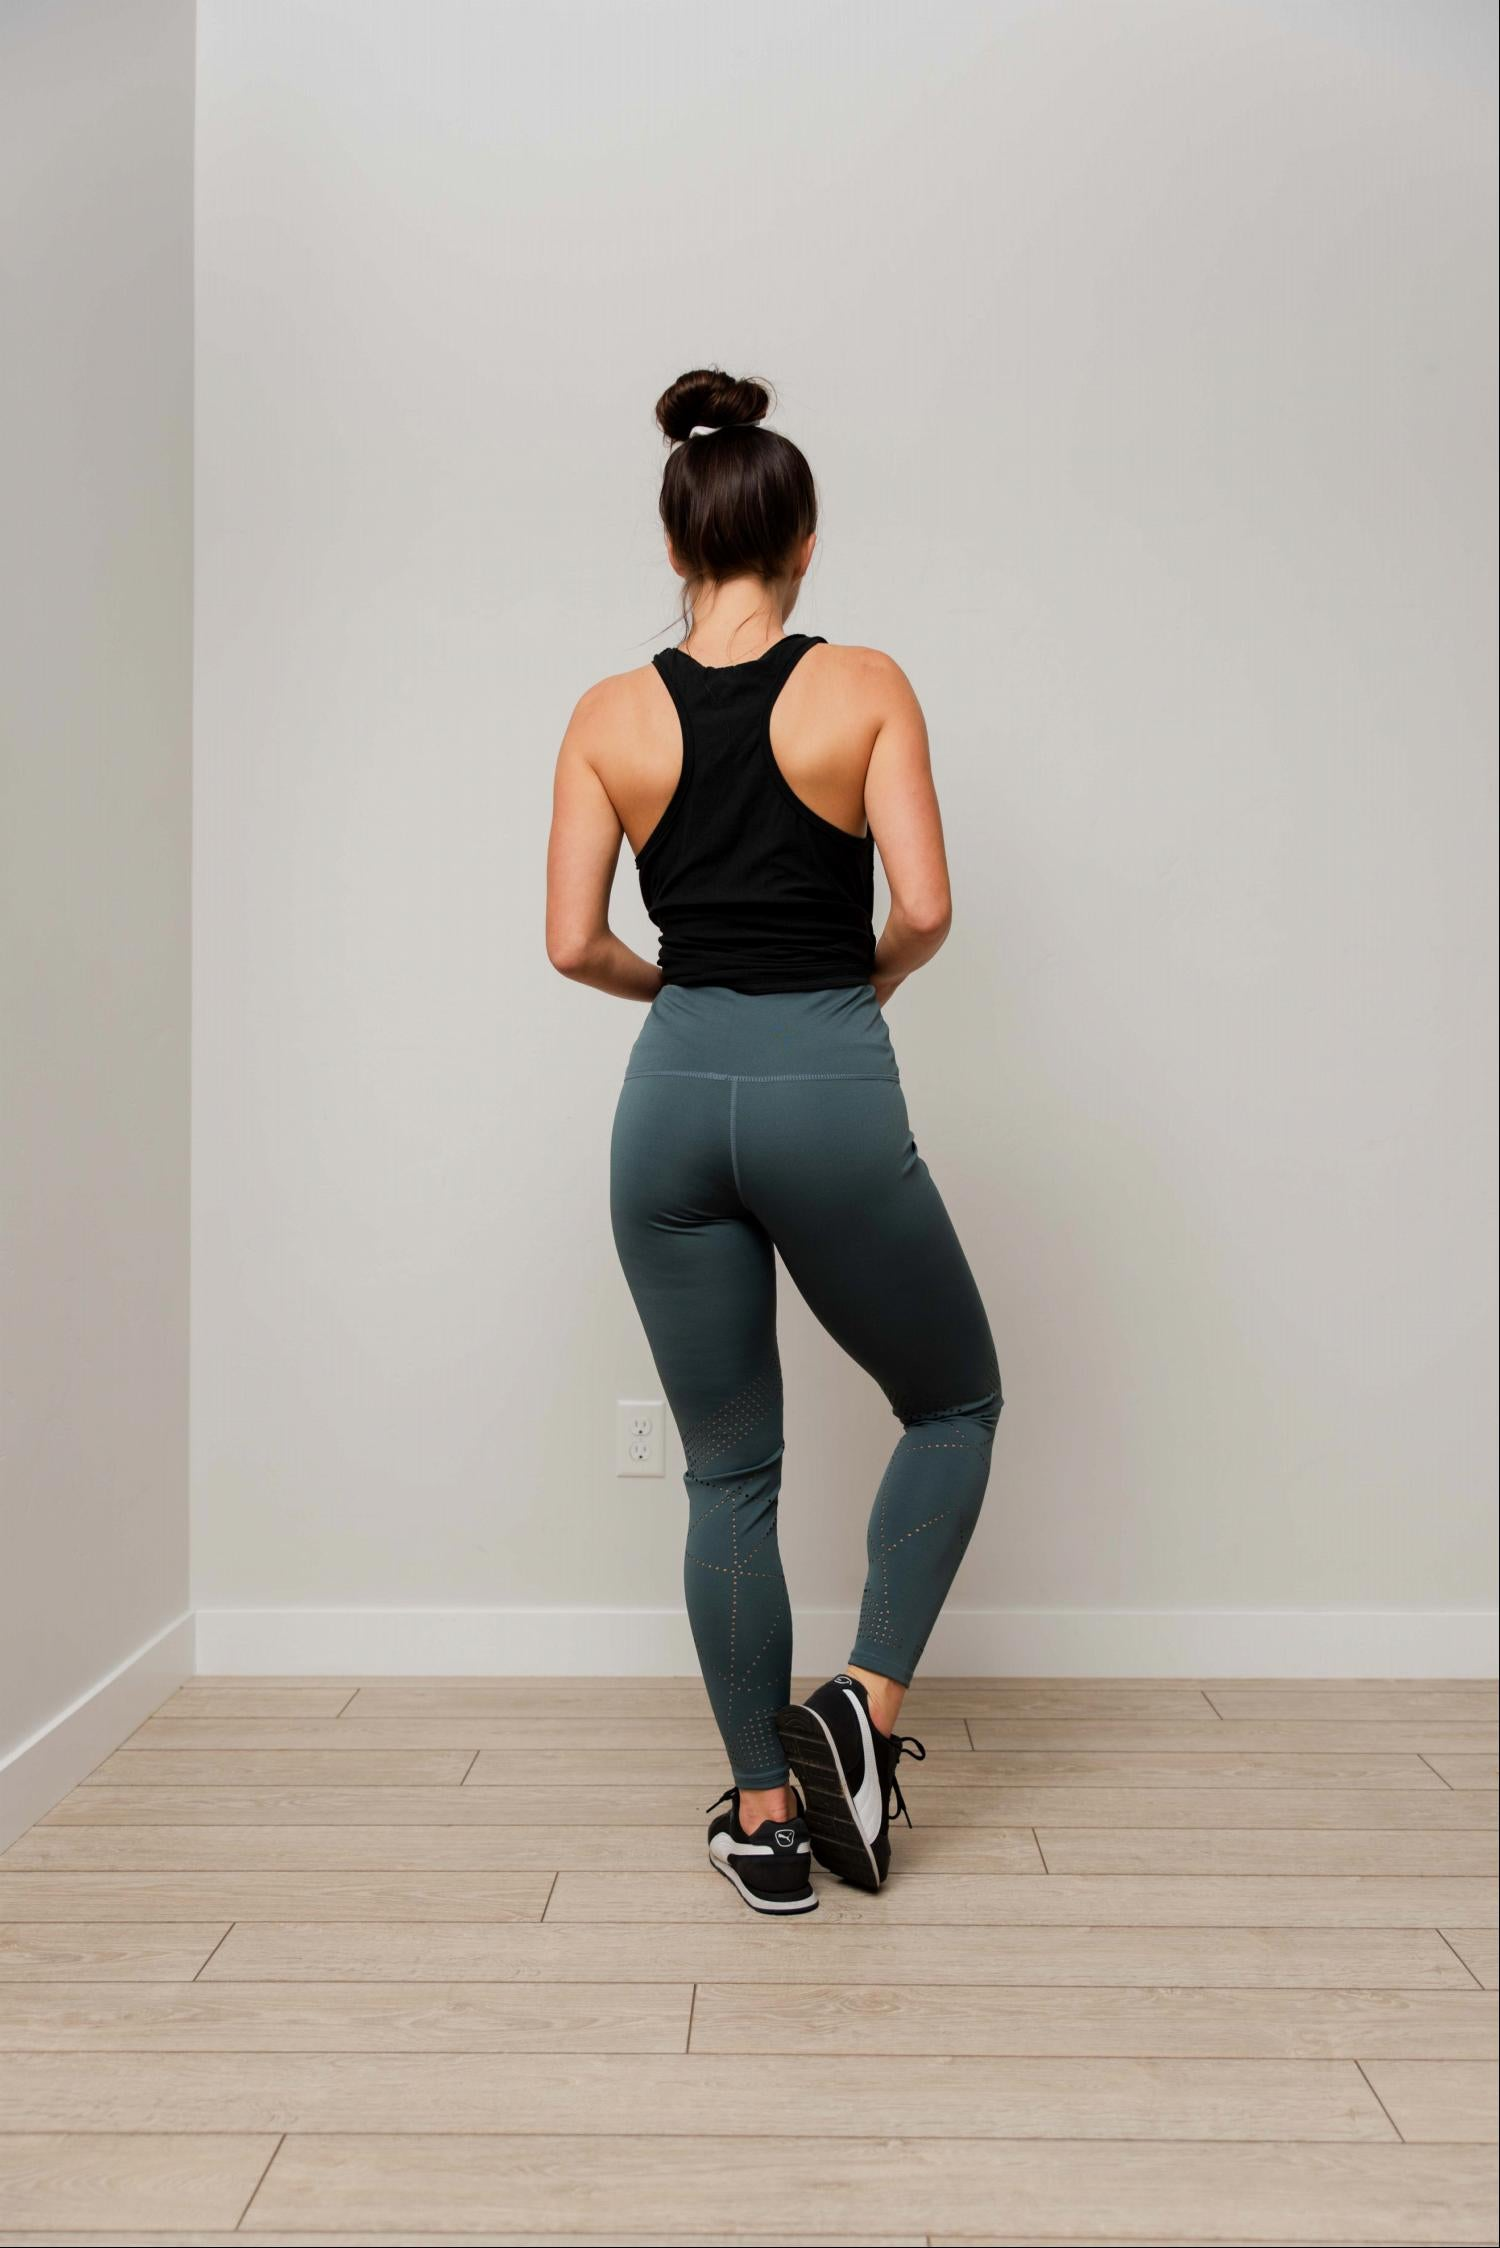 Teal Laser cut fashion yoga legging